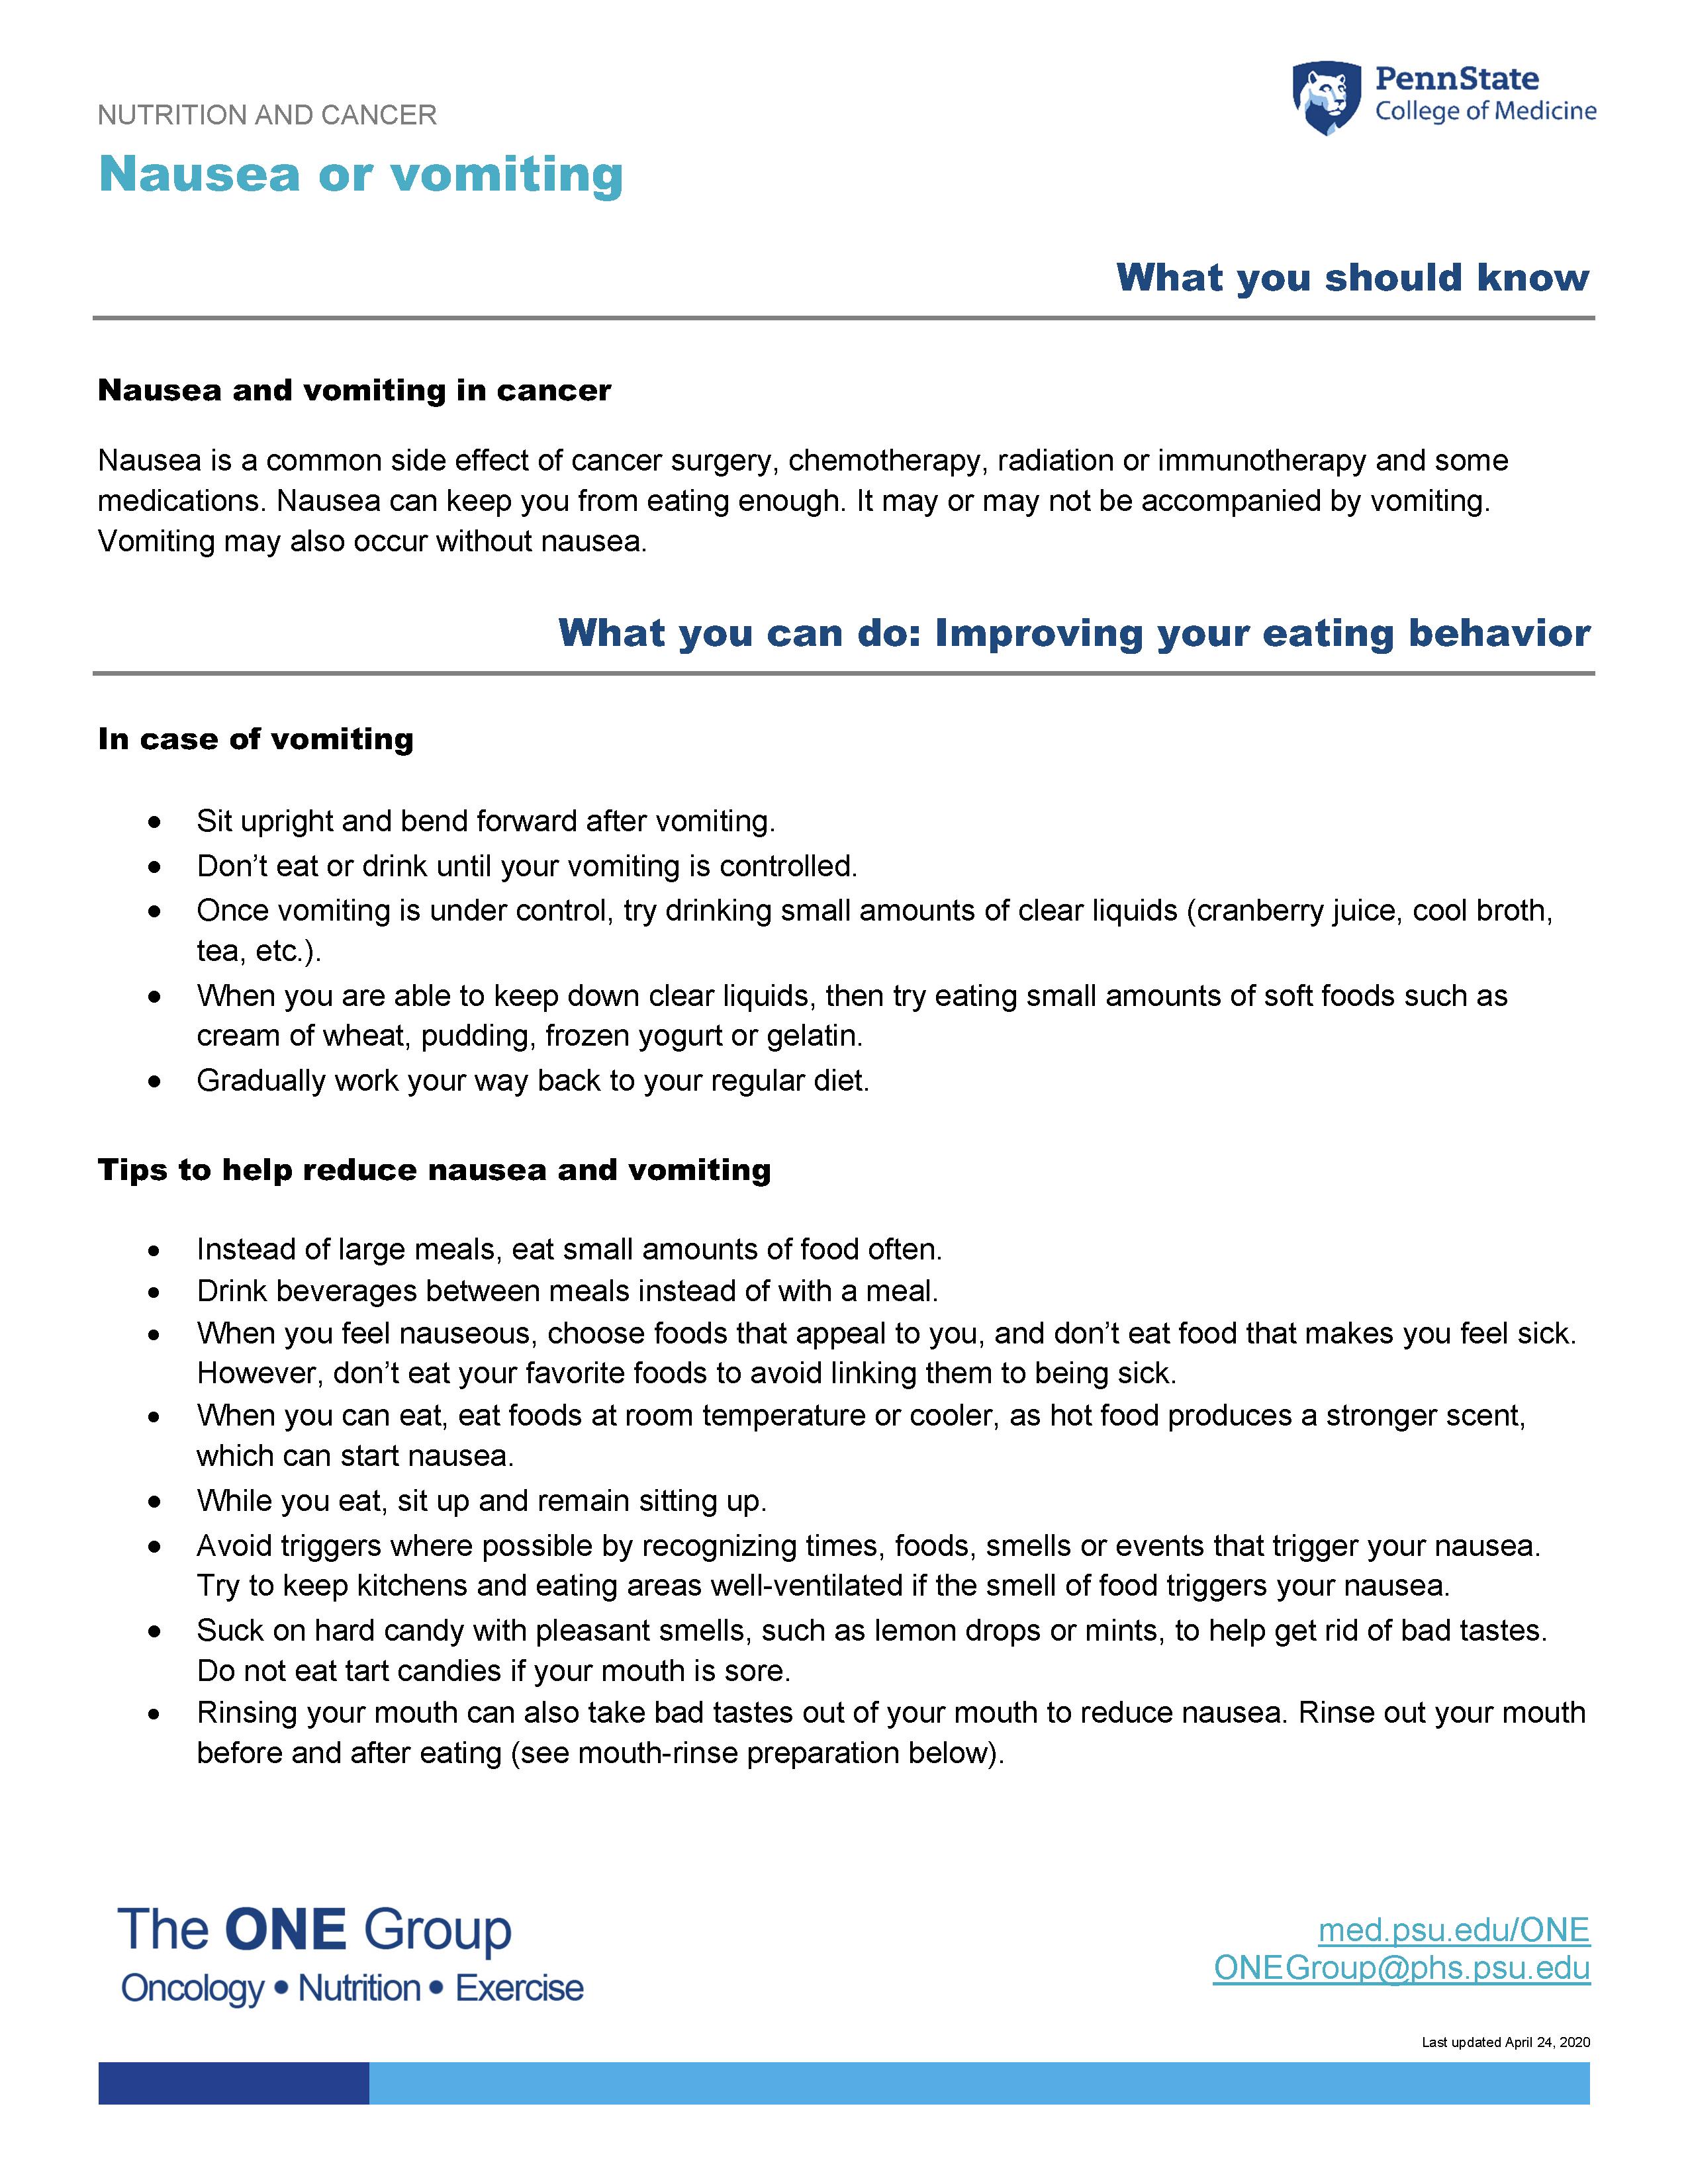 The nausea or vomiting guide from The ONE Group includes the information on this page, formatted for print.